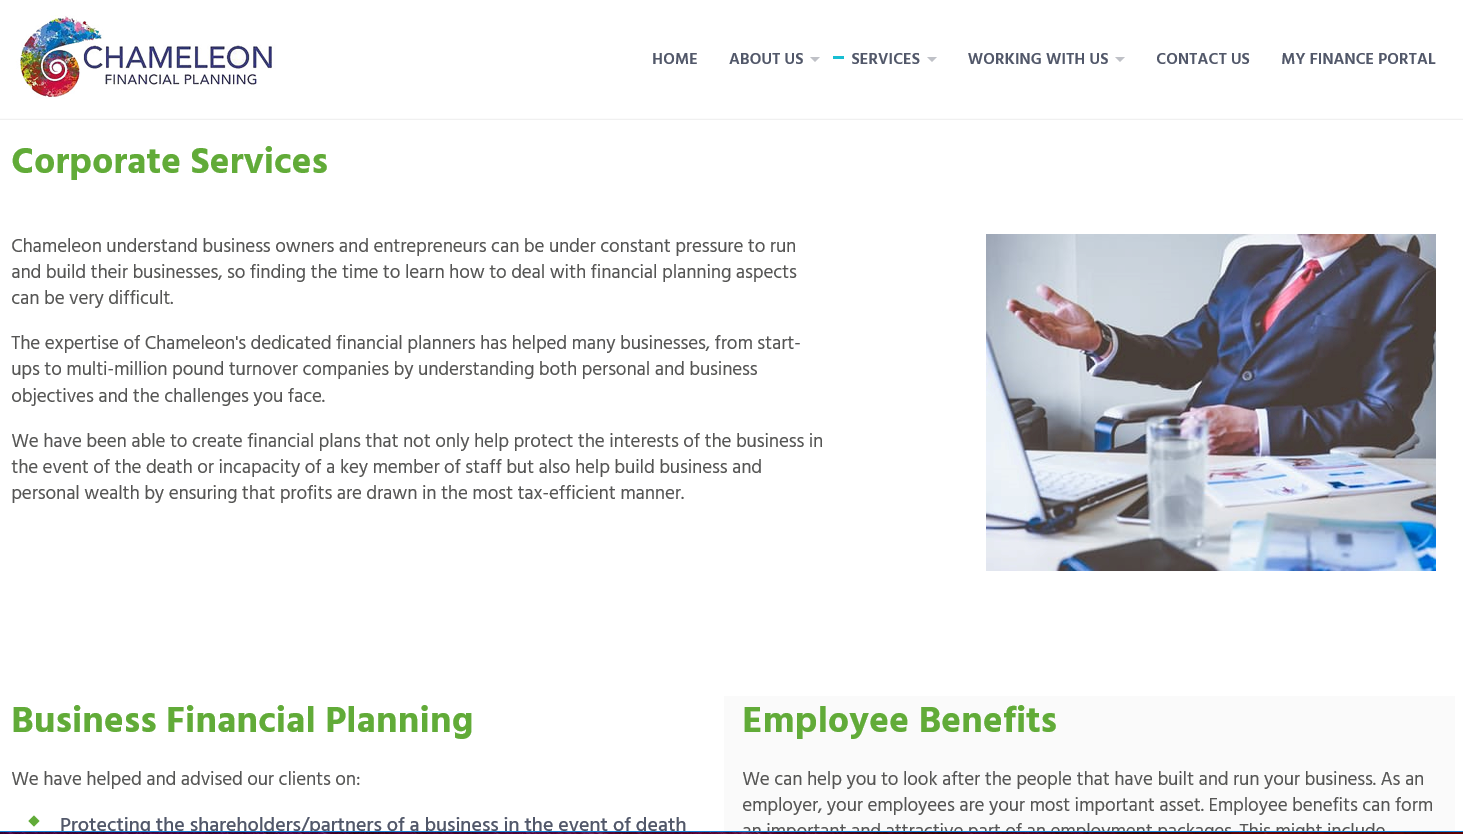 Chameleon Financial Planning - Corporate